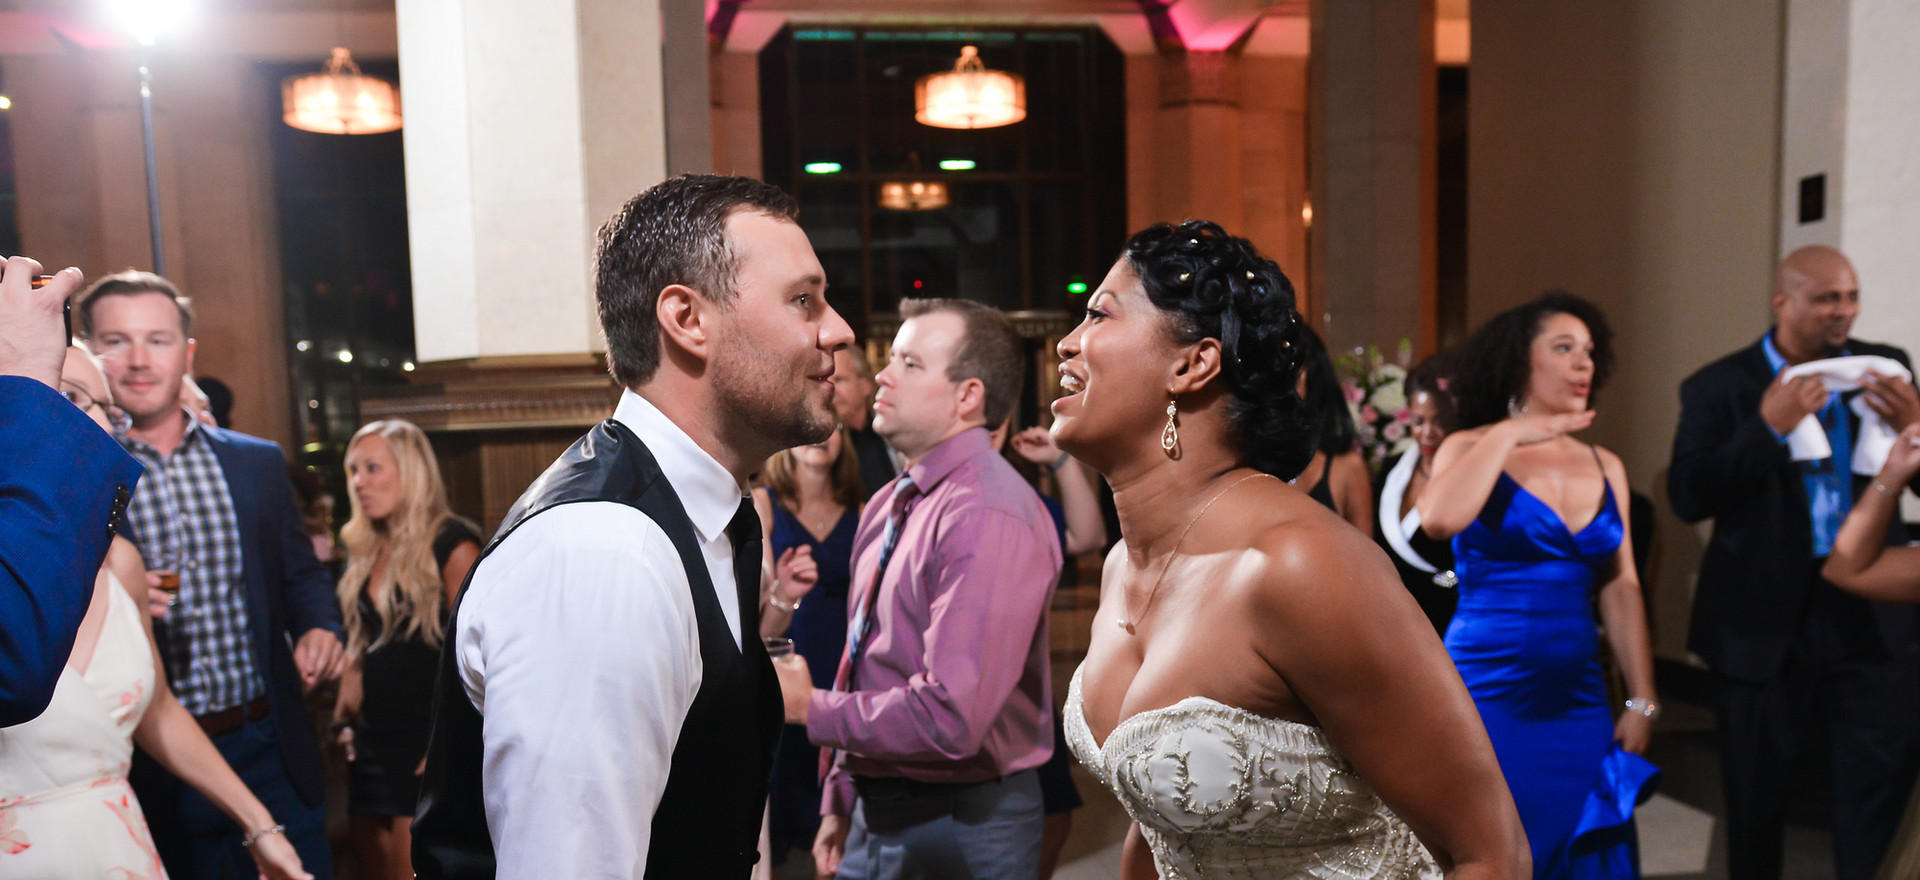 best dallas wedding planners tina dannel serendipity events by tina bride groom dancing